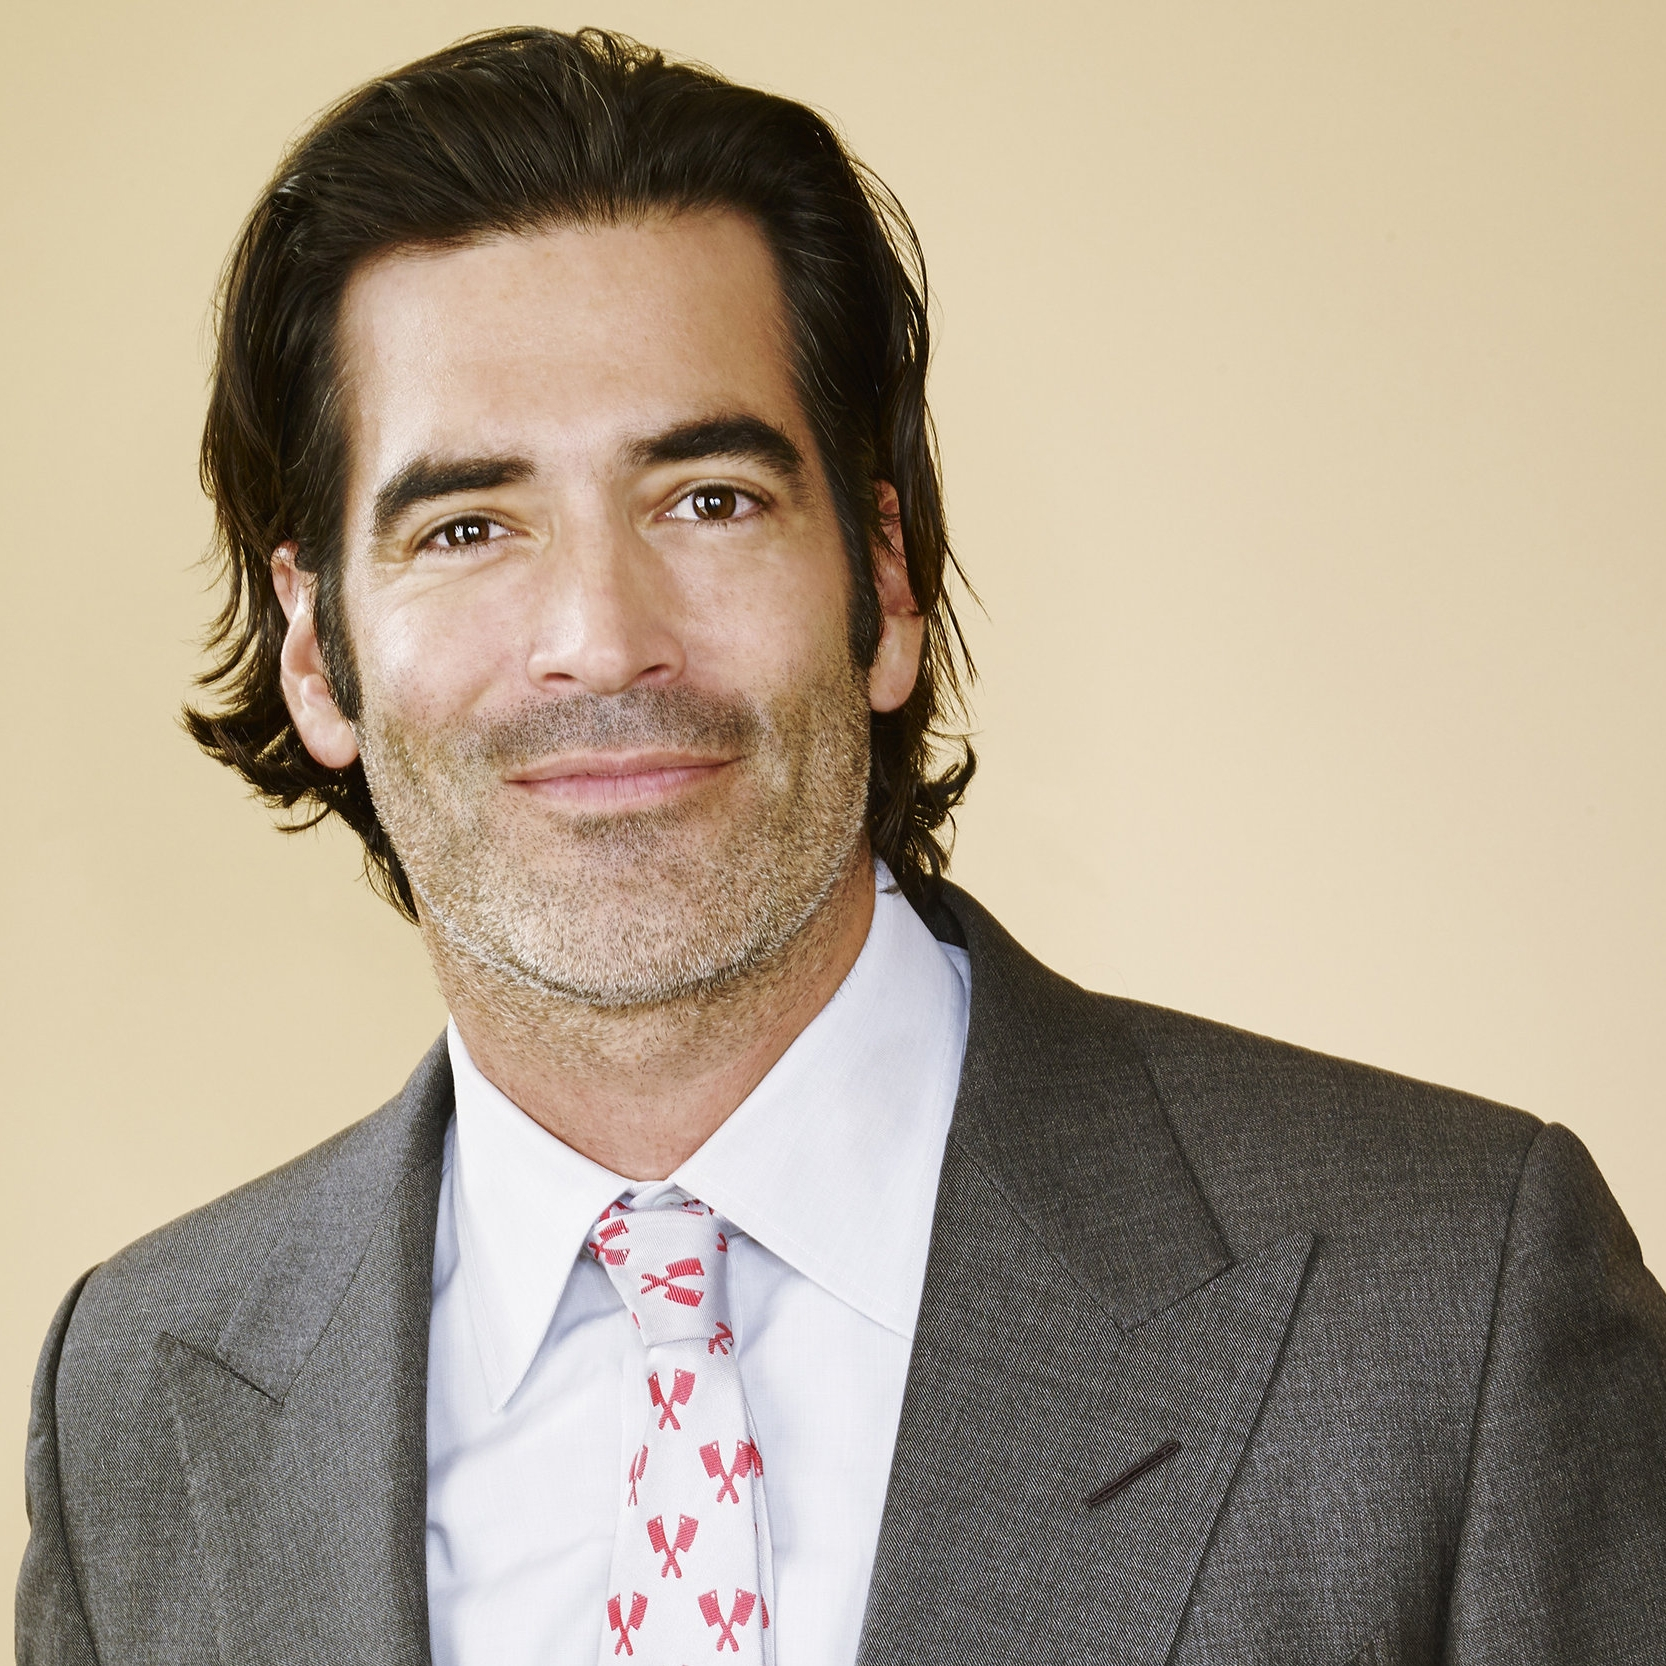 Carter Oosterhouse   Oosterhouse became a star as a carpenter on TLC's Trading Spaces in the mid 2000s and once again returned with the original cast for the reboot of the show this year.